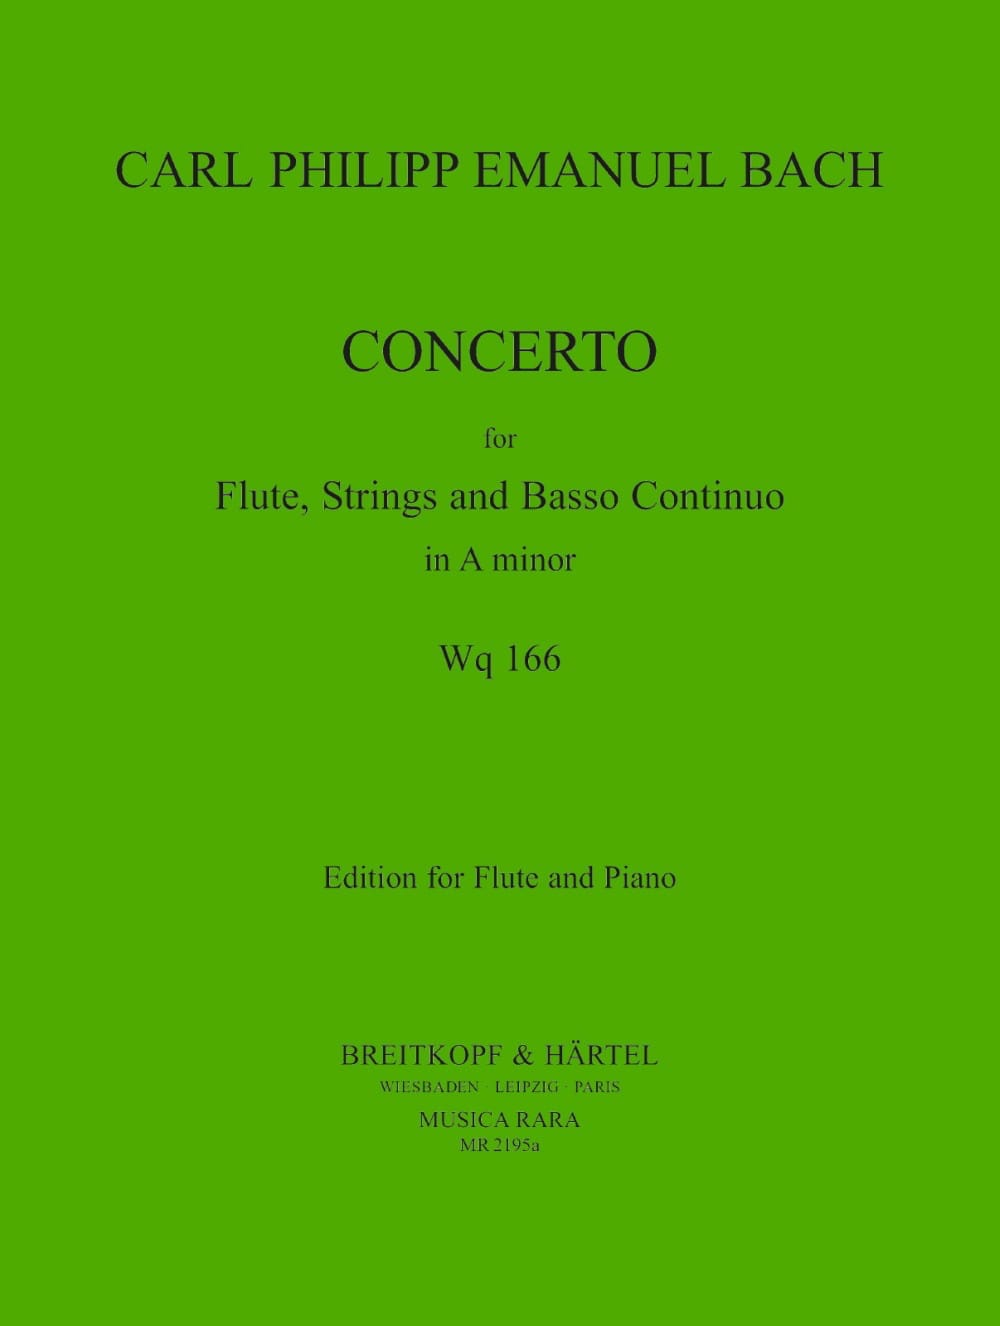 Carl Philipp Emanuel Bach - Concerto in A Minor WQ 166 - Piano Flute - Partition - di-arezzo.com